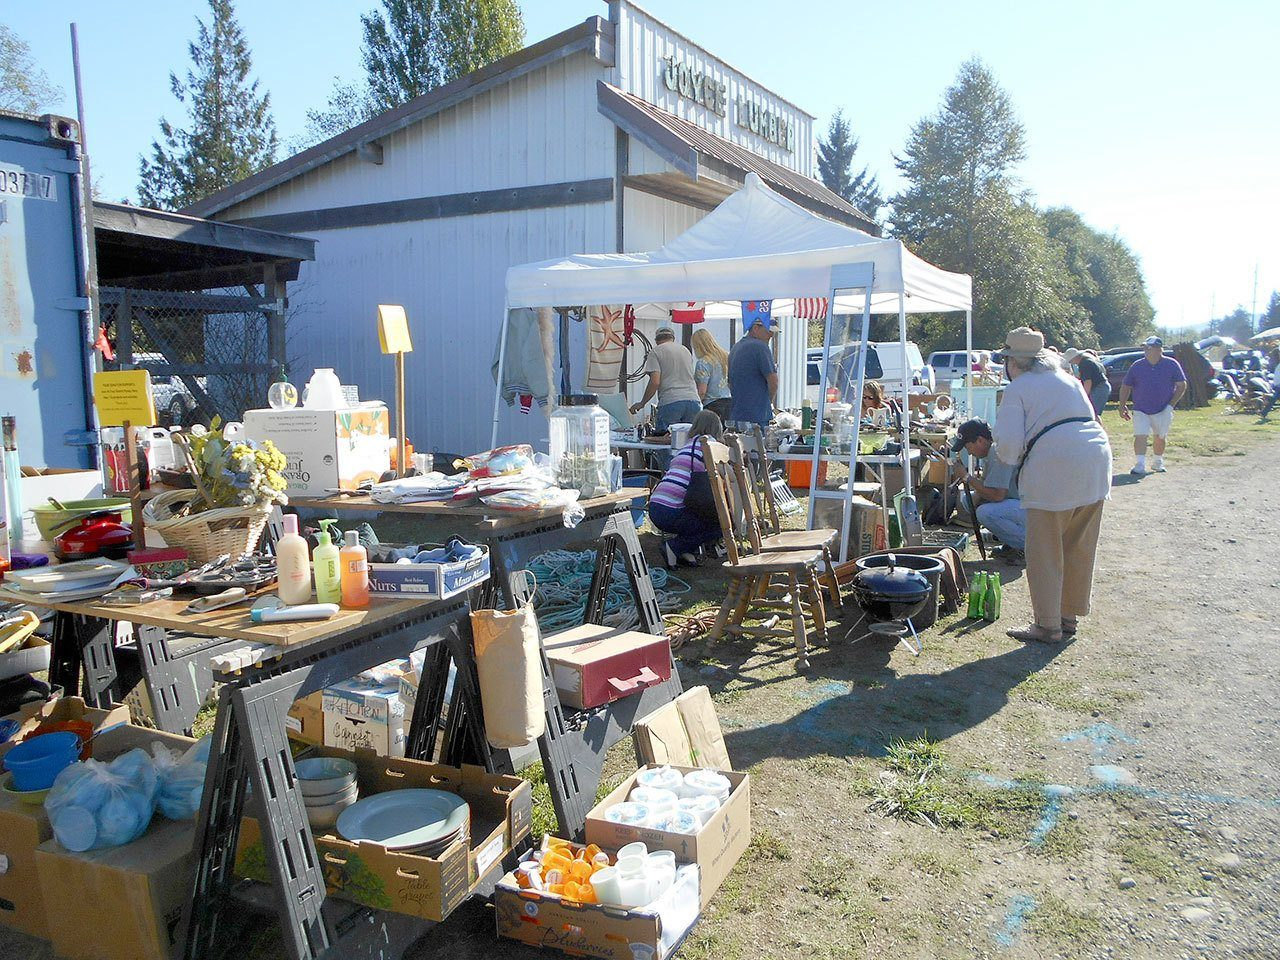 Shoppers look for bargains at last year's Great Strait Sale on state Highway 112 in Joyce. Despite a detour for culvert work in Pysht, organizers said the annual event will go on in many towns, including Joyce, Clallam Bay, Sekiu and Neah Bay. (Sande Balch)